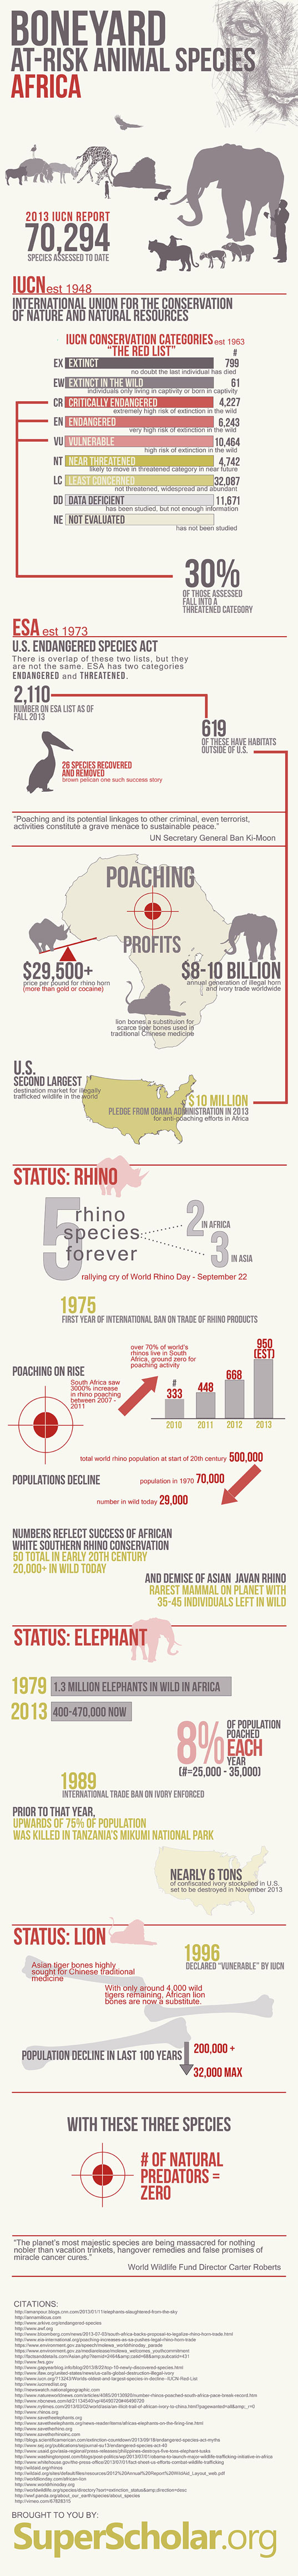 1. How Poaching is threatening to wipe Out Lions, Elephants and Rhinos in Africa